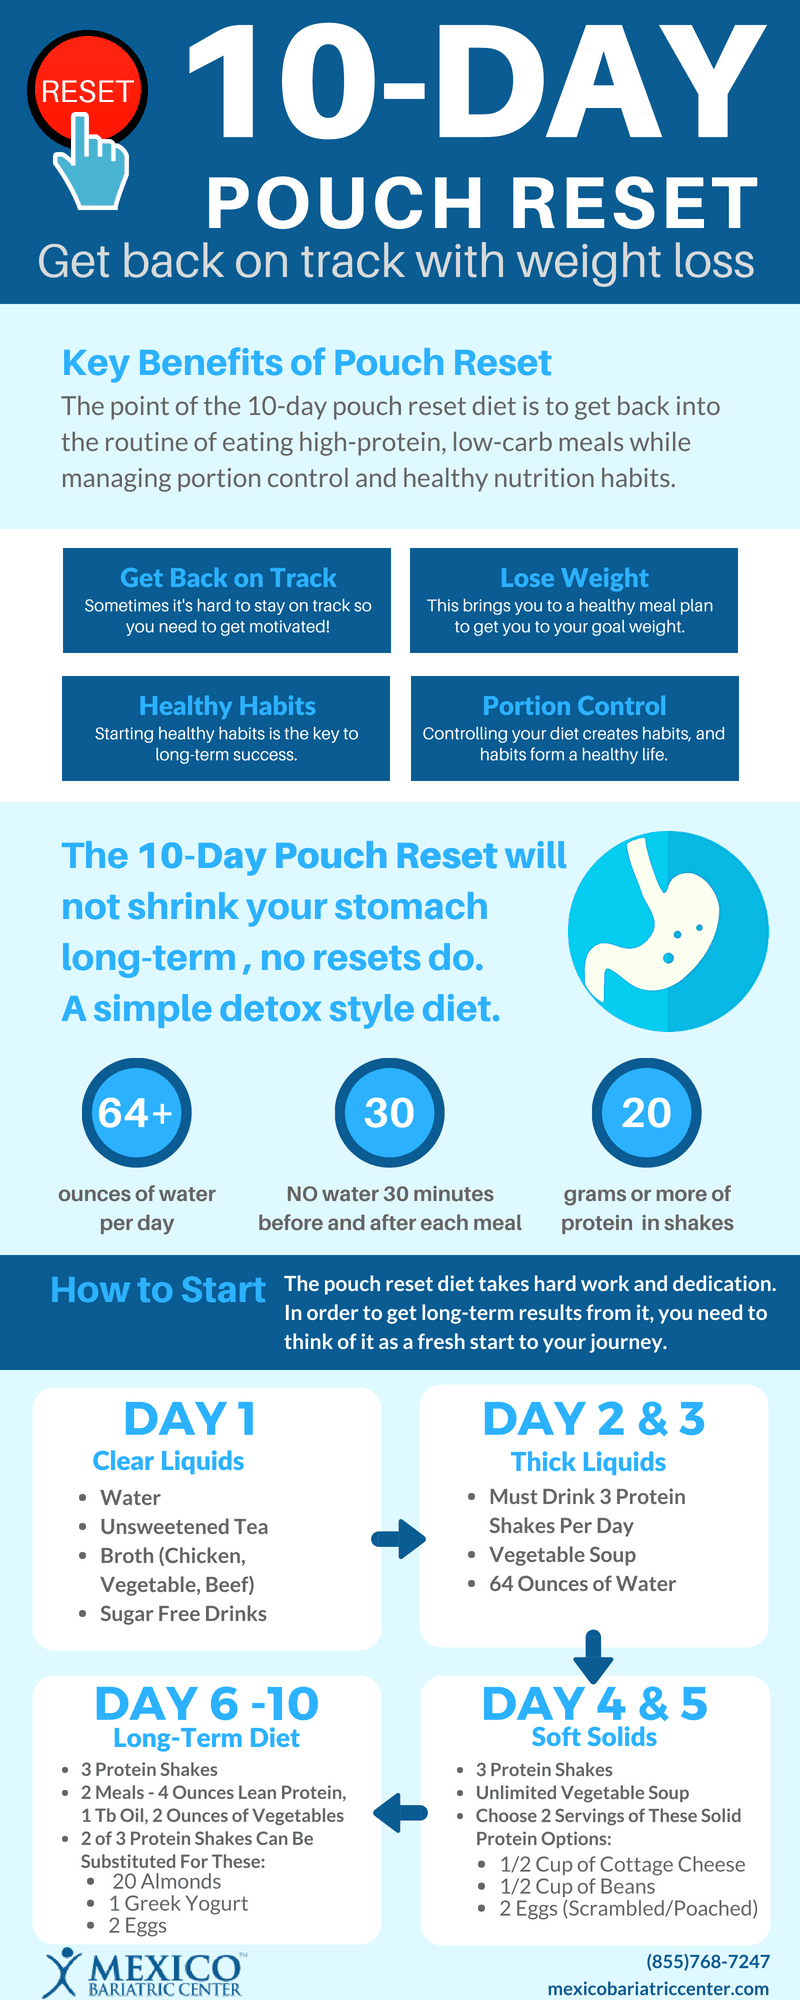 10 Day Pouch Reset Diet - Infographic